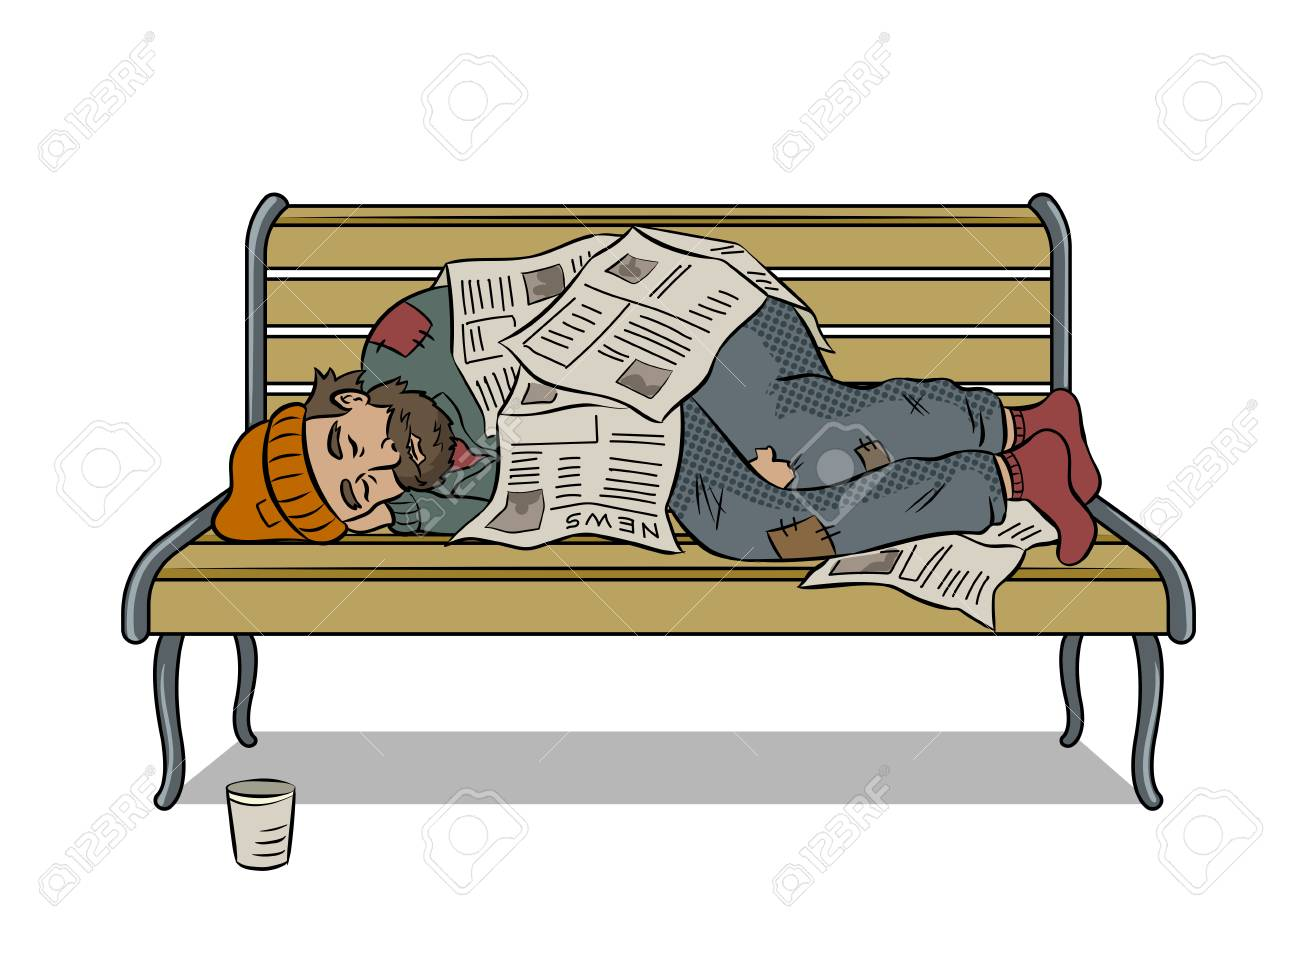 Homeless man on bench pop art vector